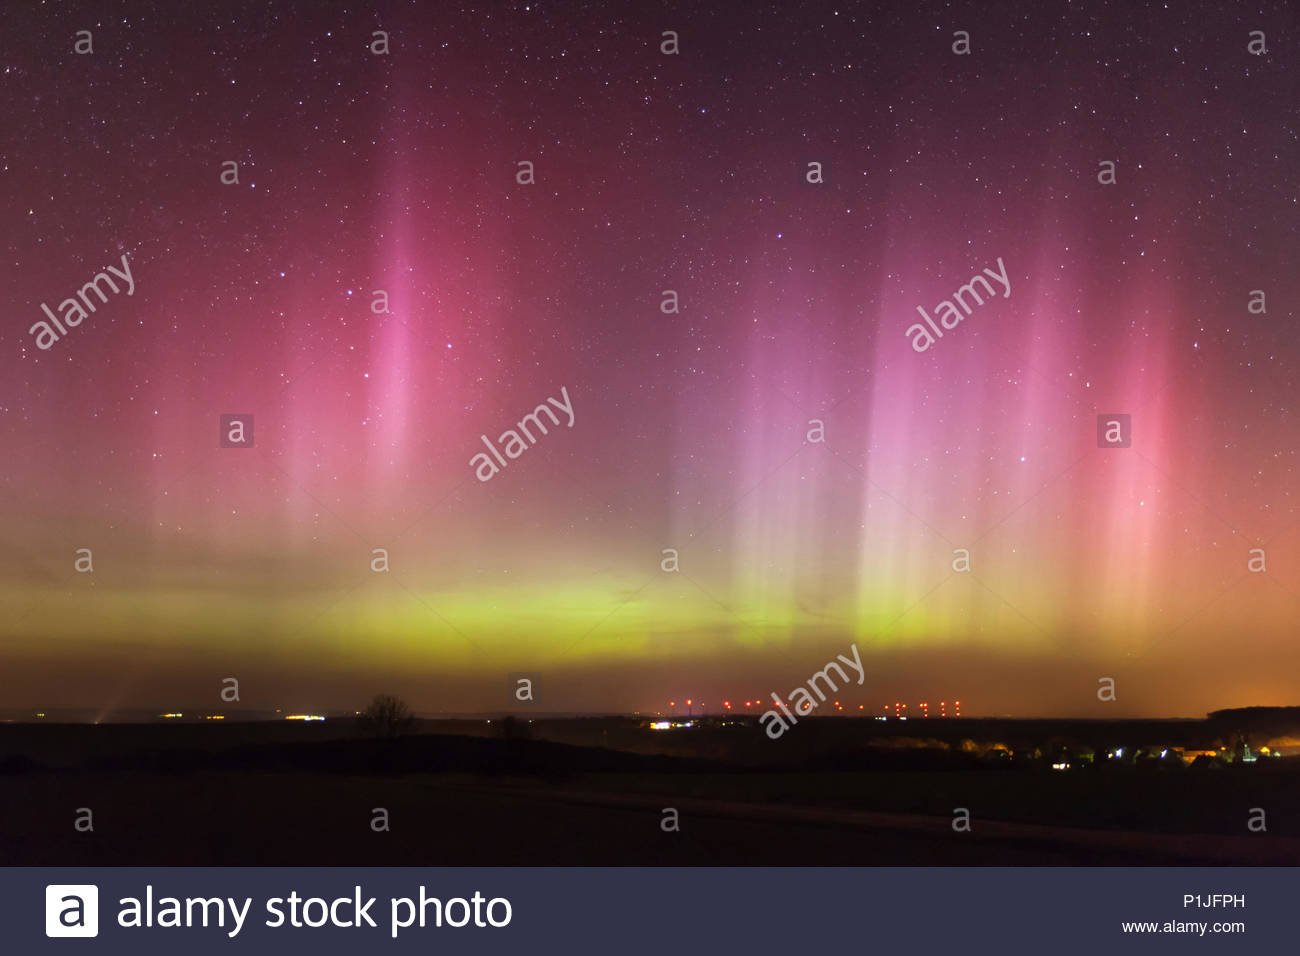 Extraordinary Northern lights, aurora borealis in Europe on March 17th/18th 2015, Rödigen, Lehesten, Jena, Thuringia, Germany - Stock Image